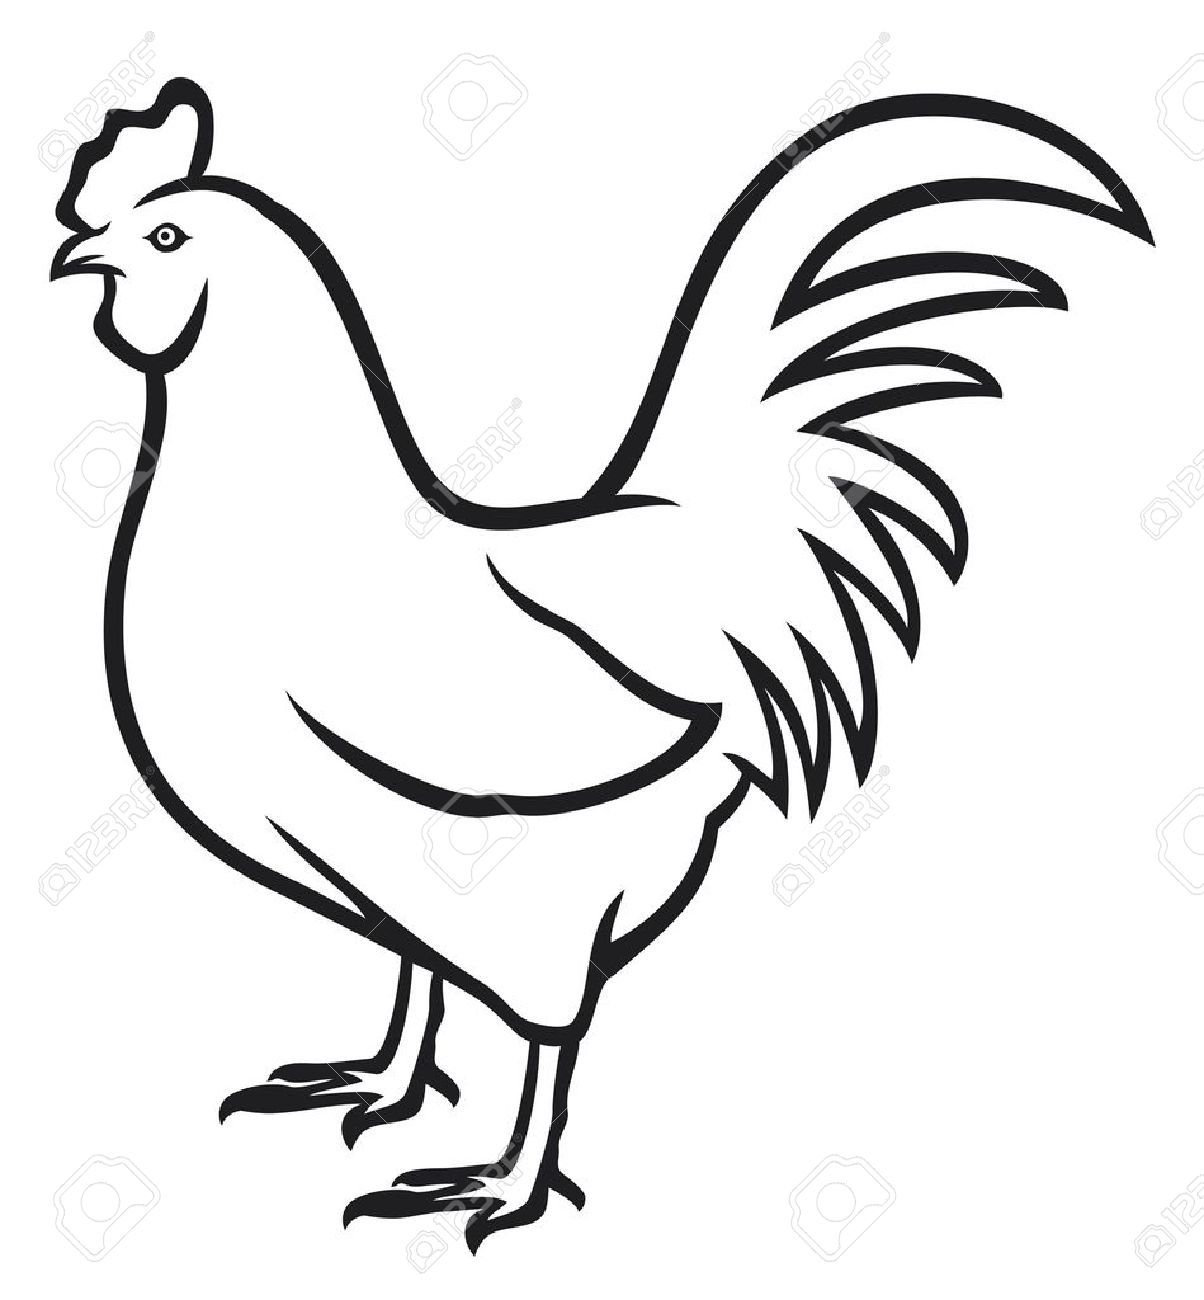 Chicken clipart outline - ClipartFest